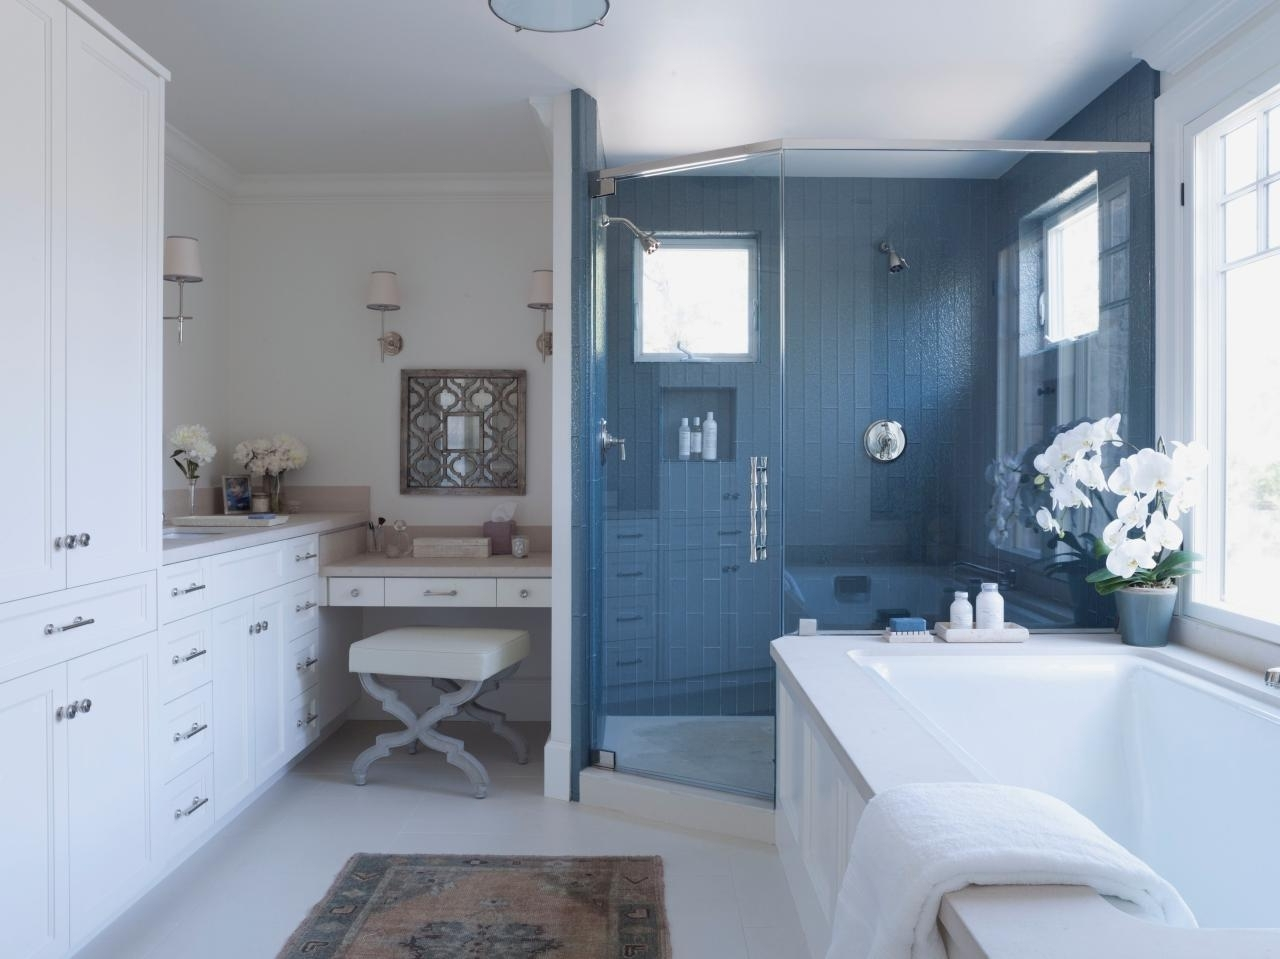 Bathroom Remodeling How To & Diy | Diy Intended For Cheap Ways To Improve Your Bathroom (Image 12 of 33)